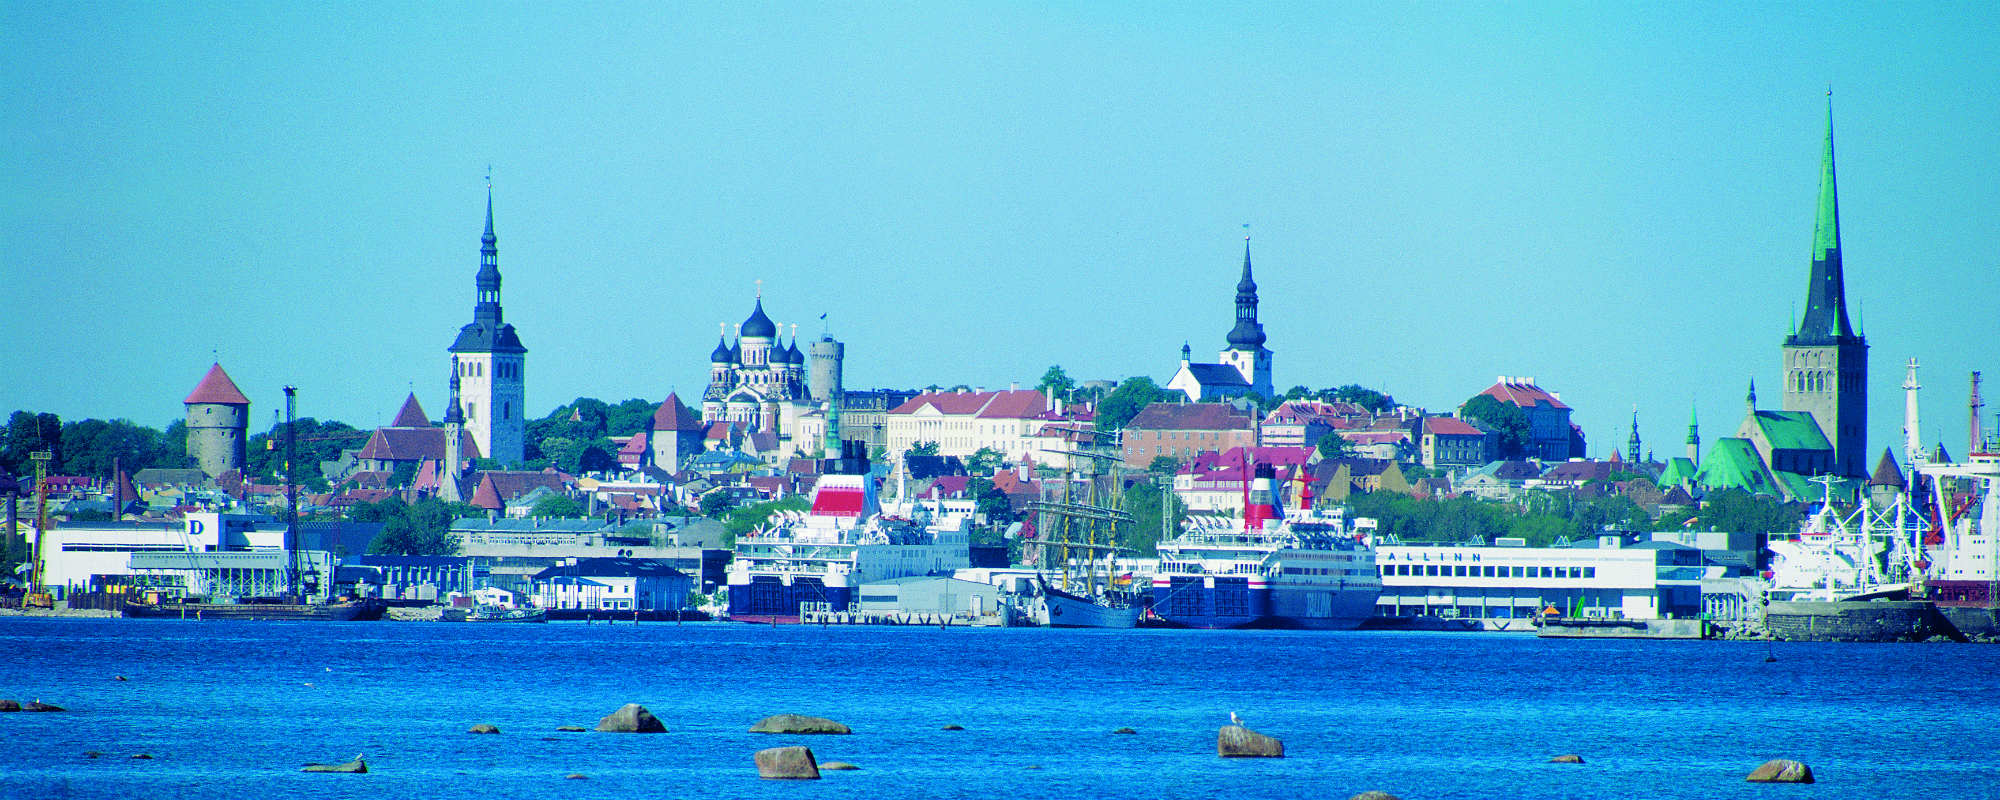 View to the Tallinn Old town from the sea. Picture by Toomas Volmer